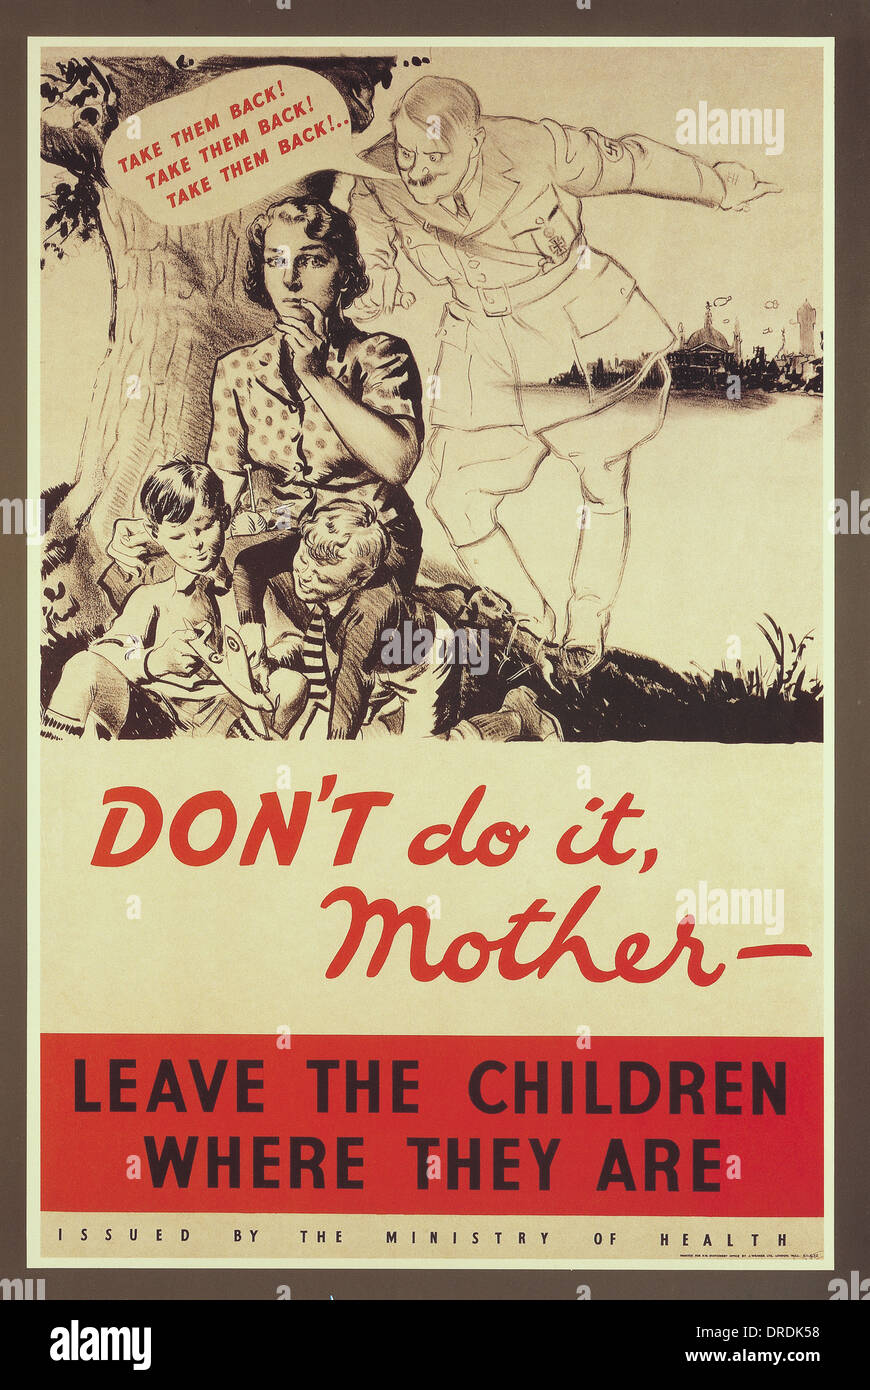 Don't do it, mother.. - Stock Image